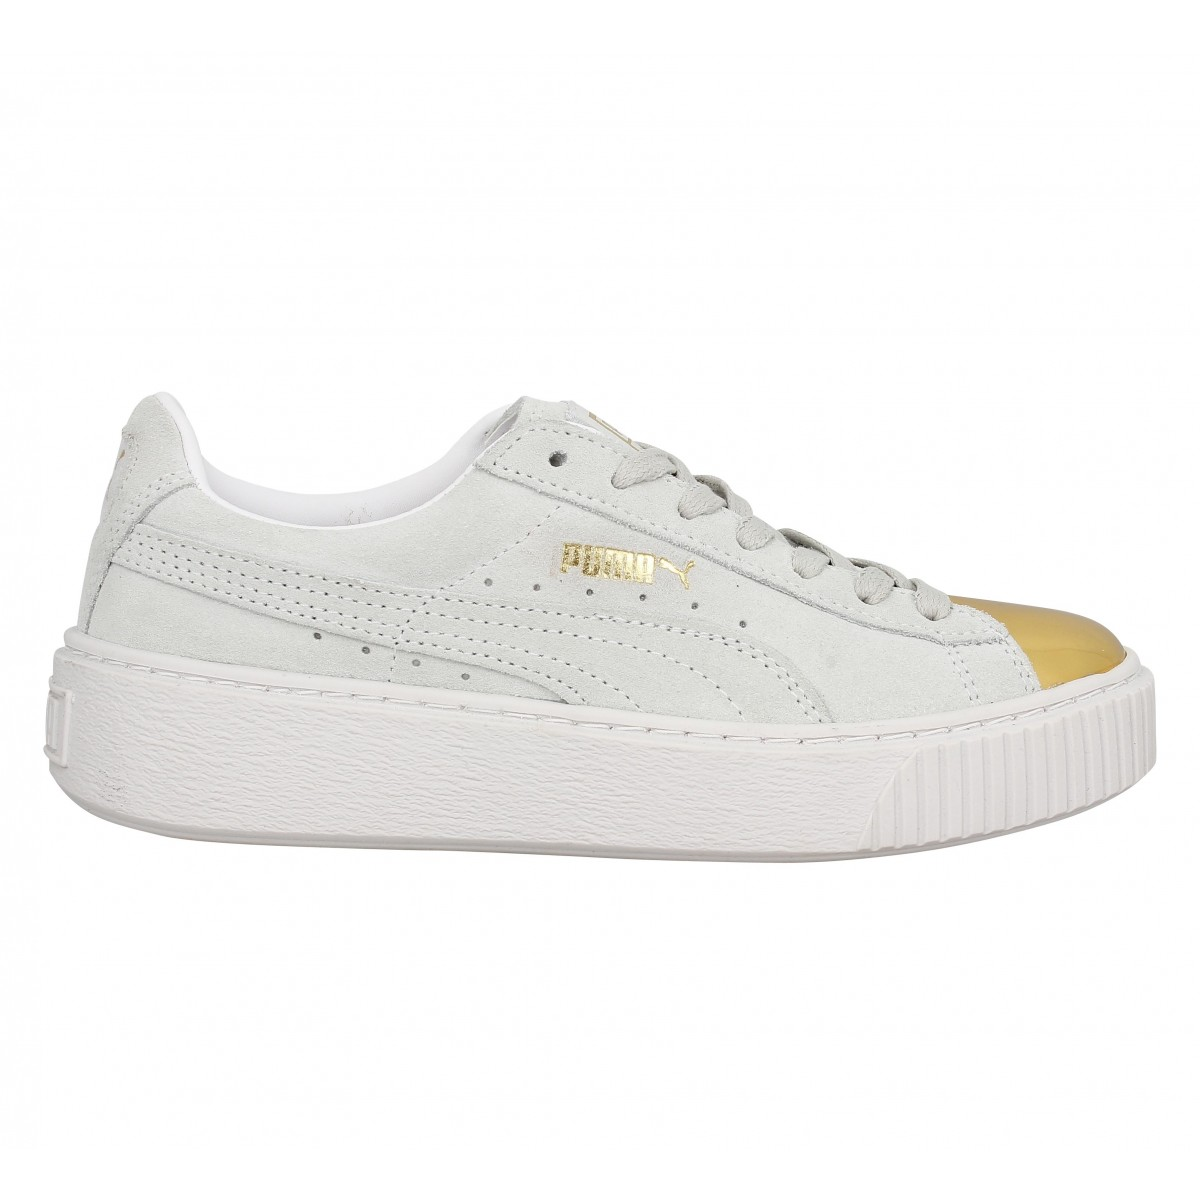 puma suede creepers femme blanche